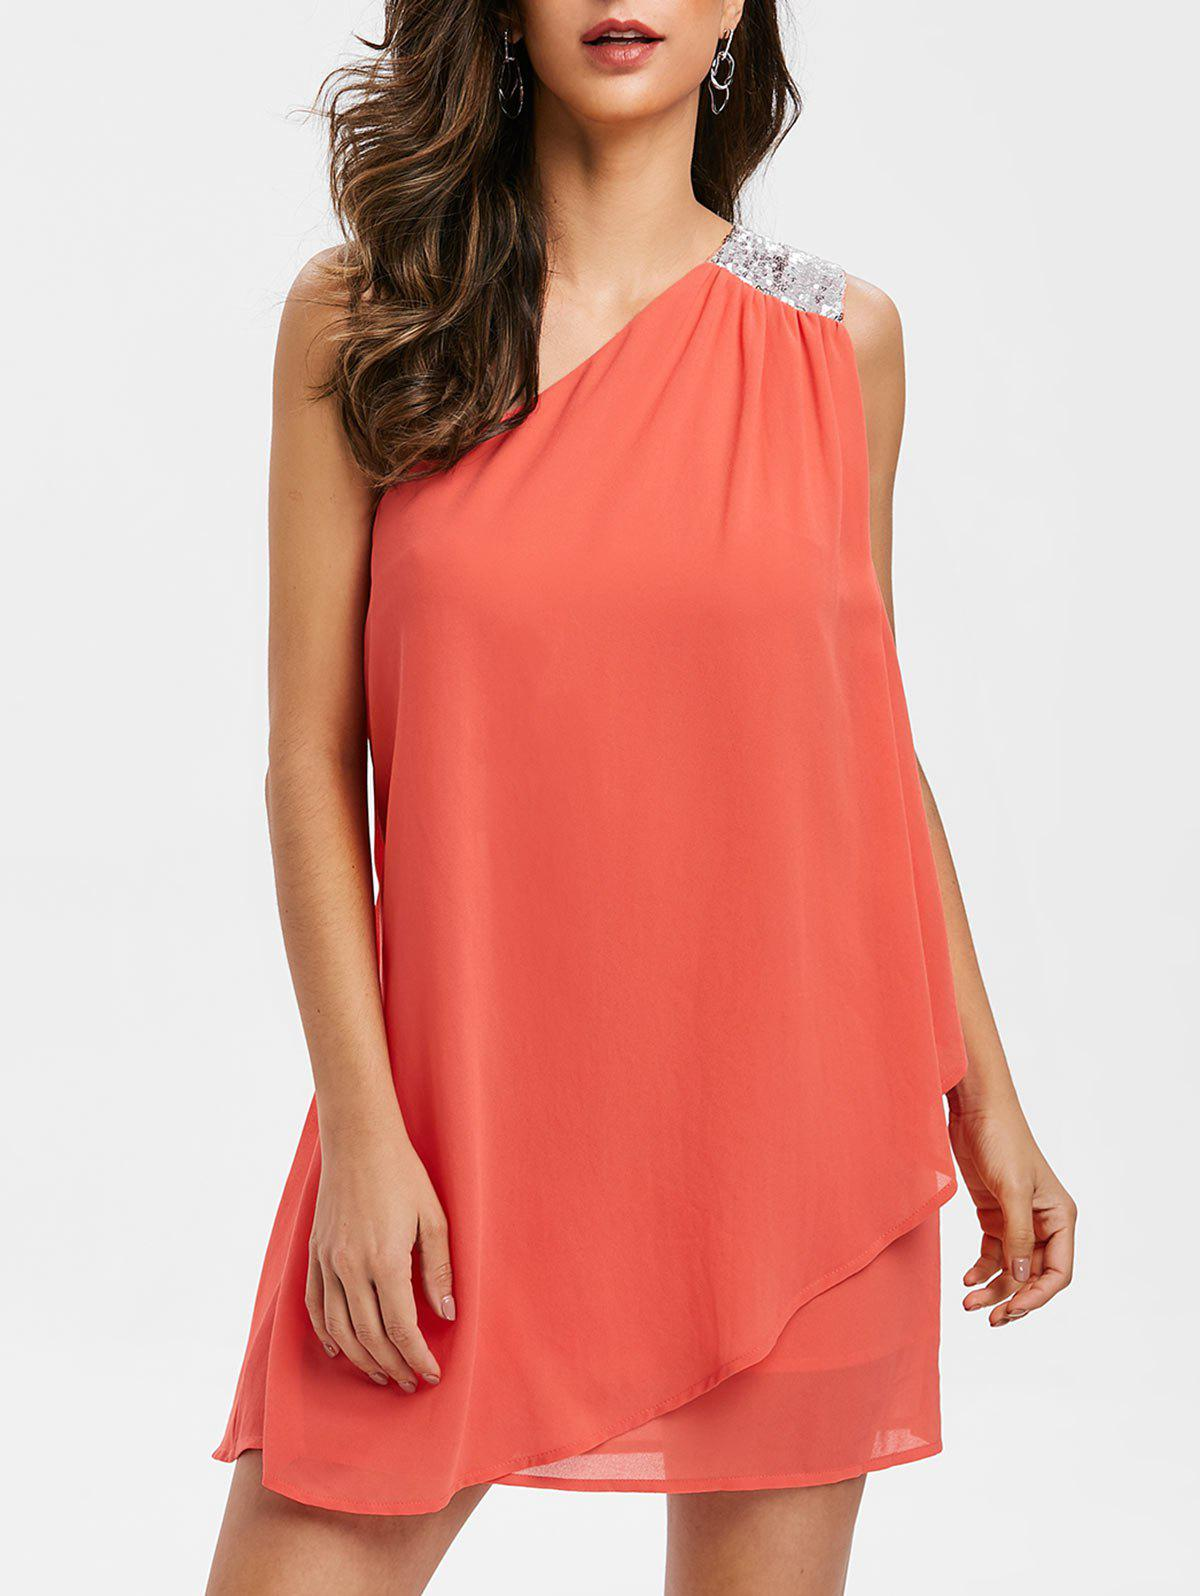 Affordable Sequined Panel Chiffon One Shoulder Dress